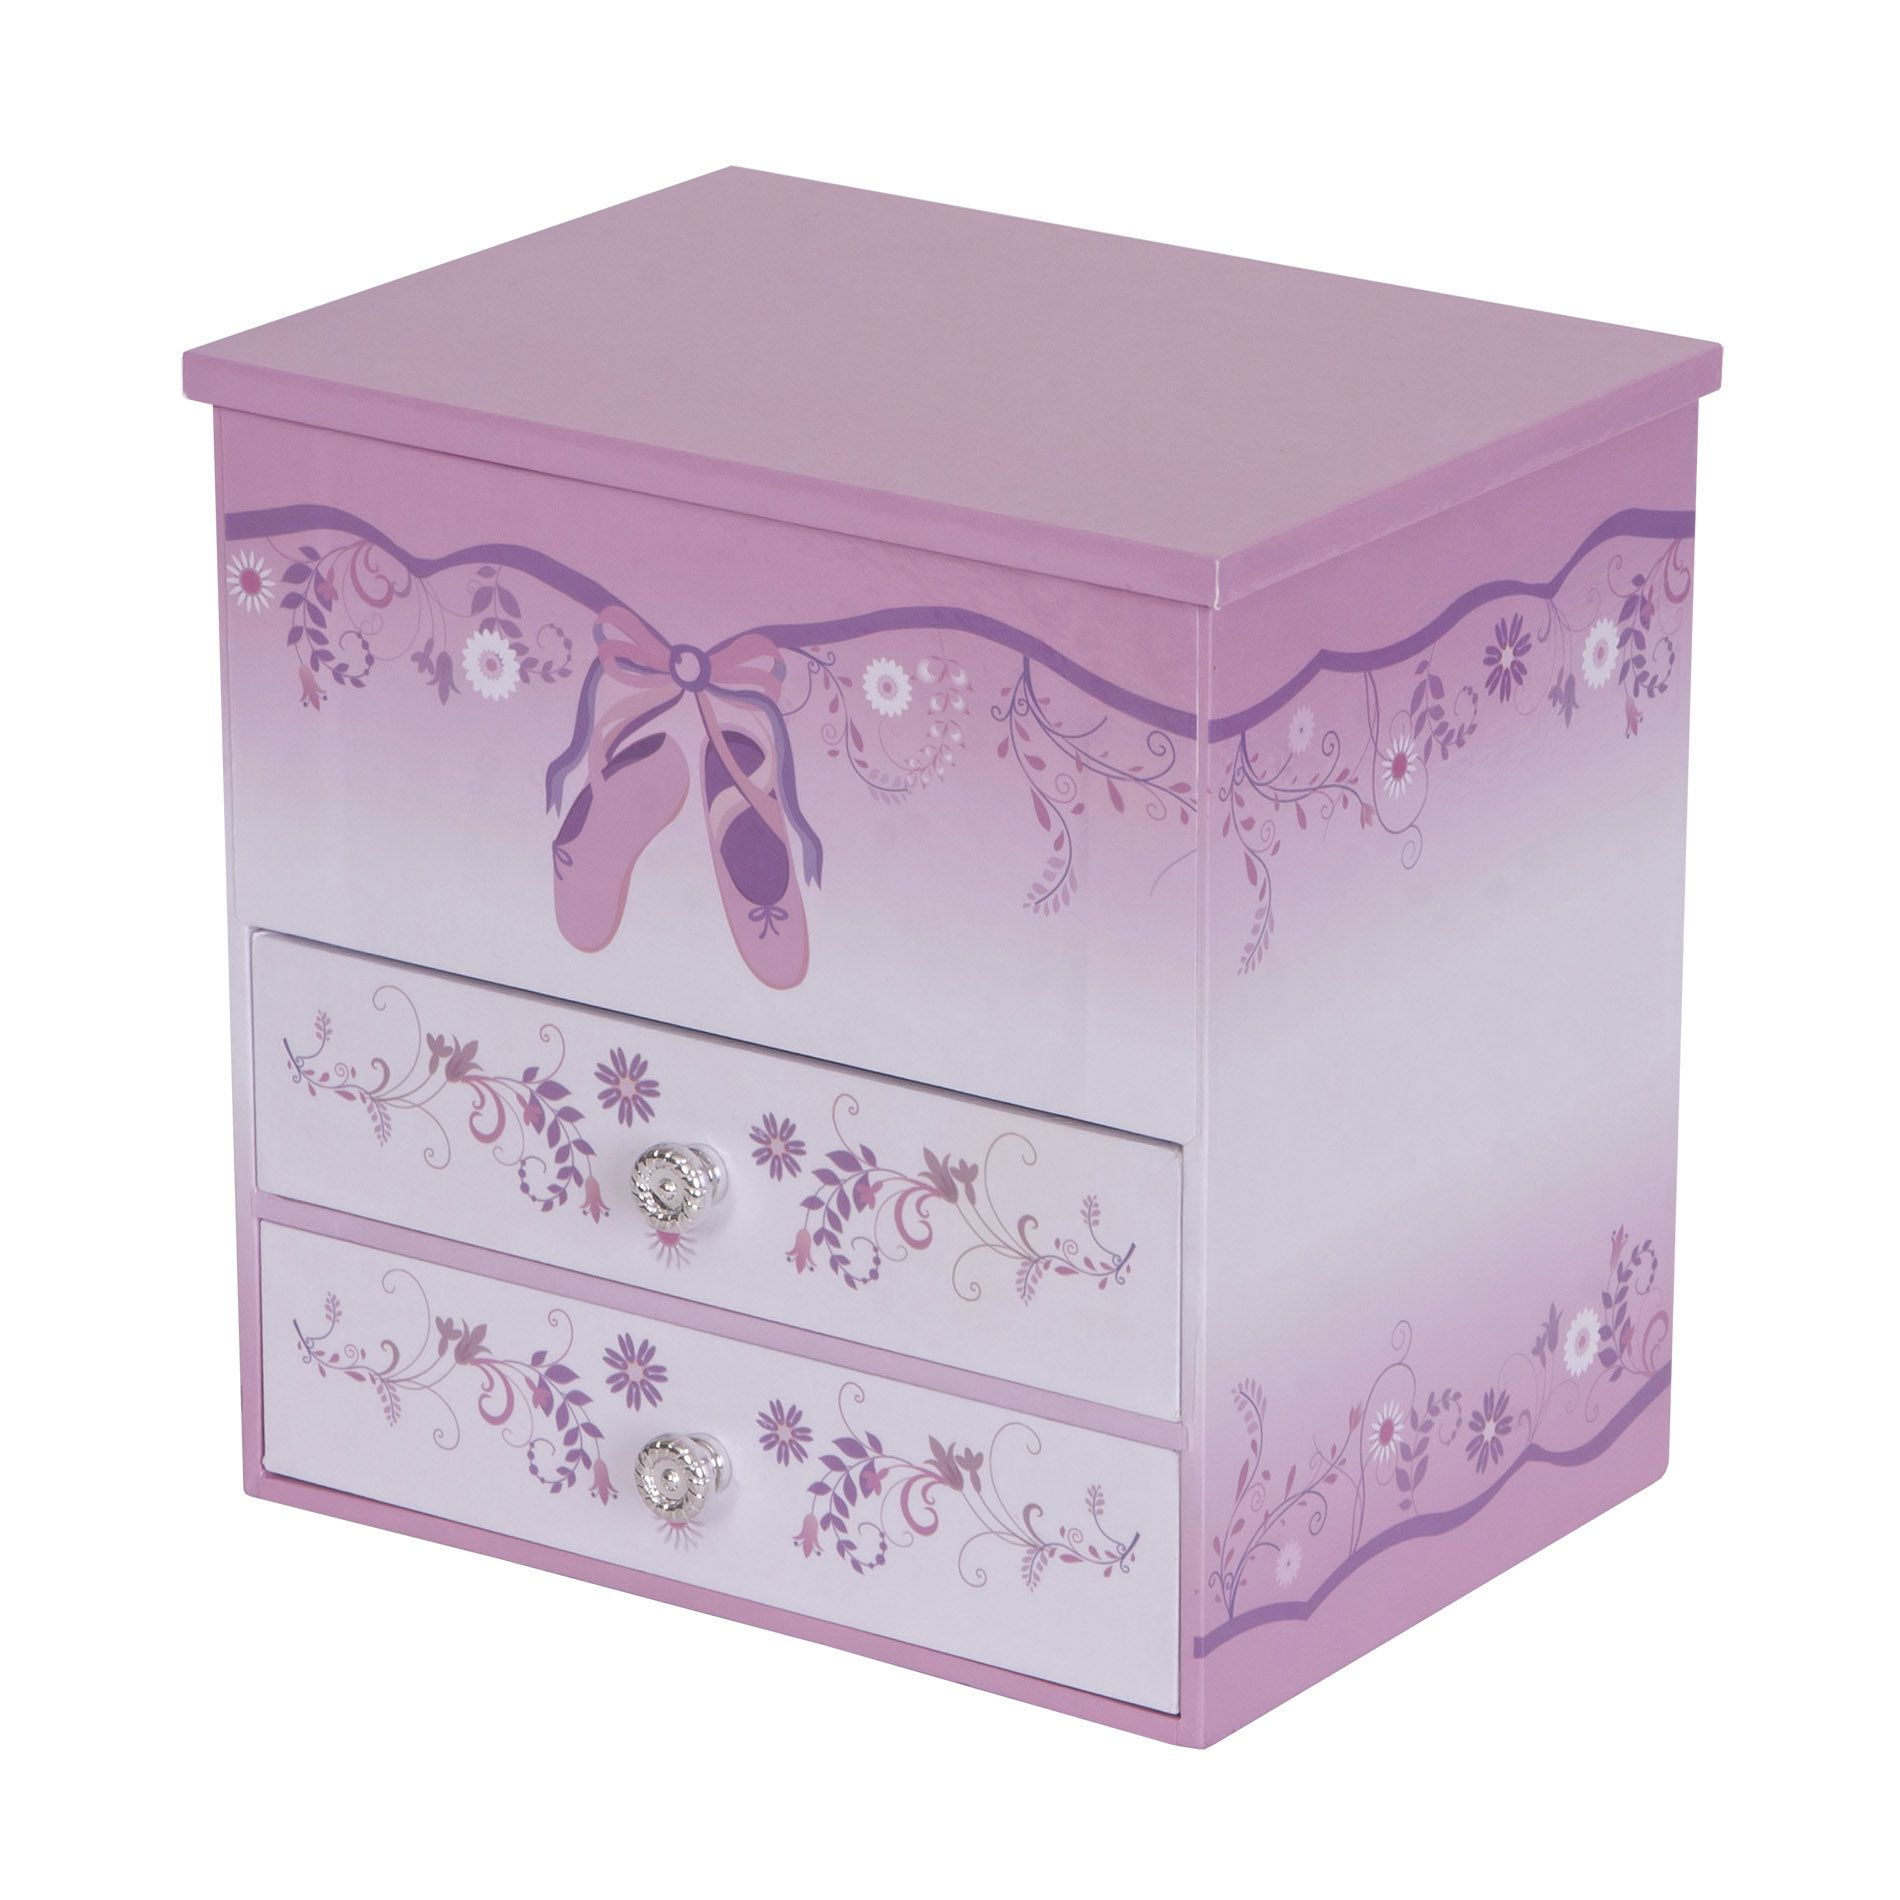 Lenox Childhood Memories Ballerina Jewelry Box Custom Poppy Musical Ballerina Jewelry Box  Products  Pinterest Review